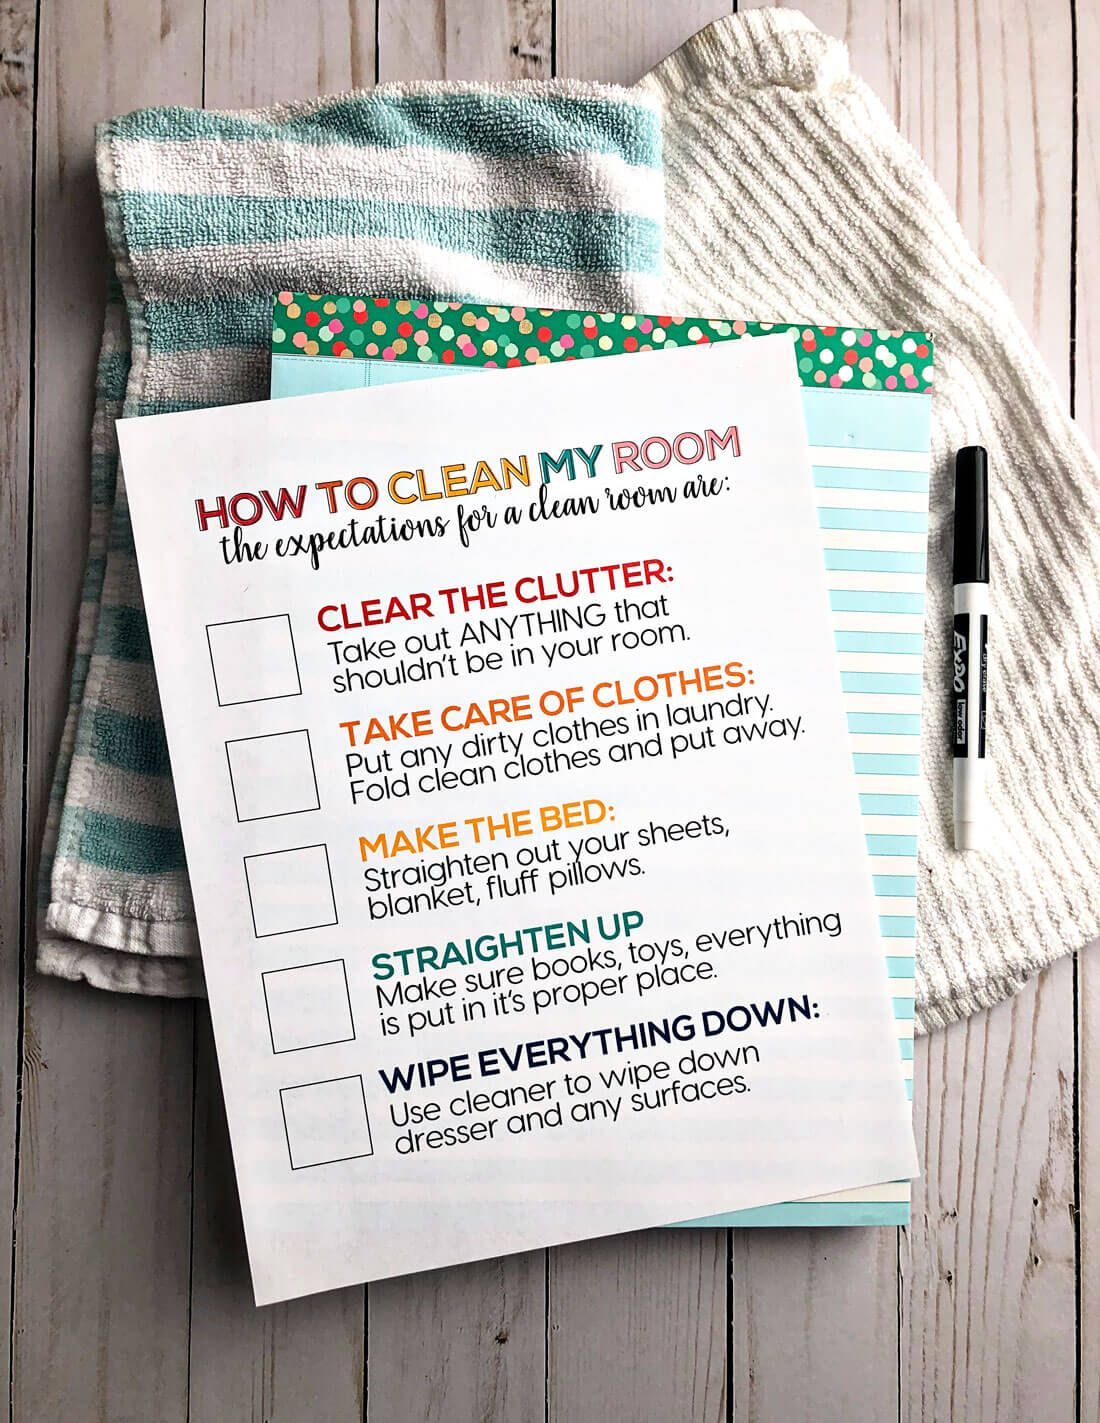 How to Clean Your Room Printable images